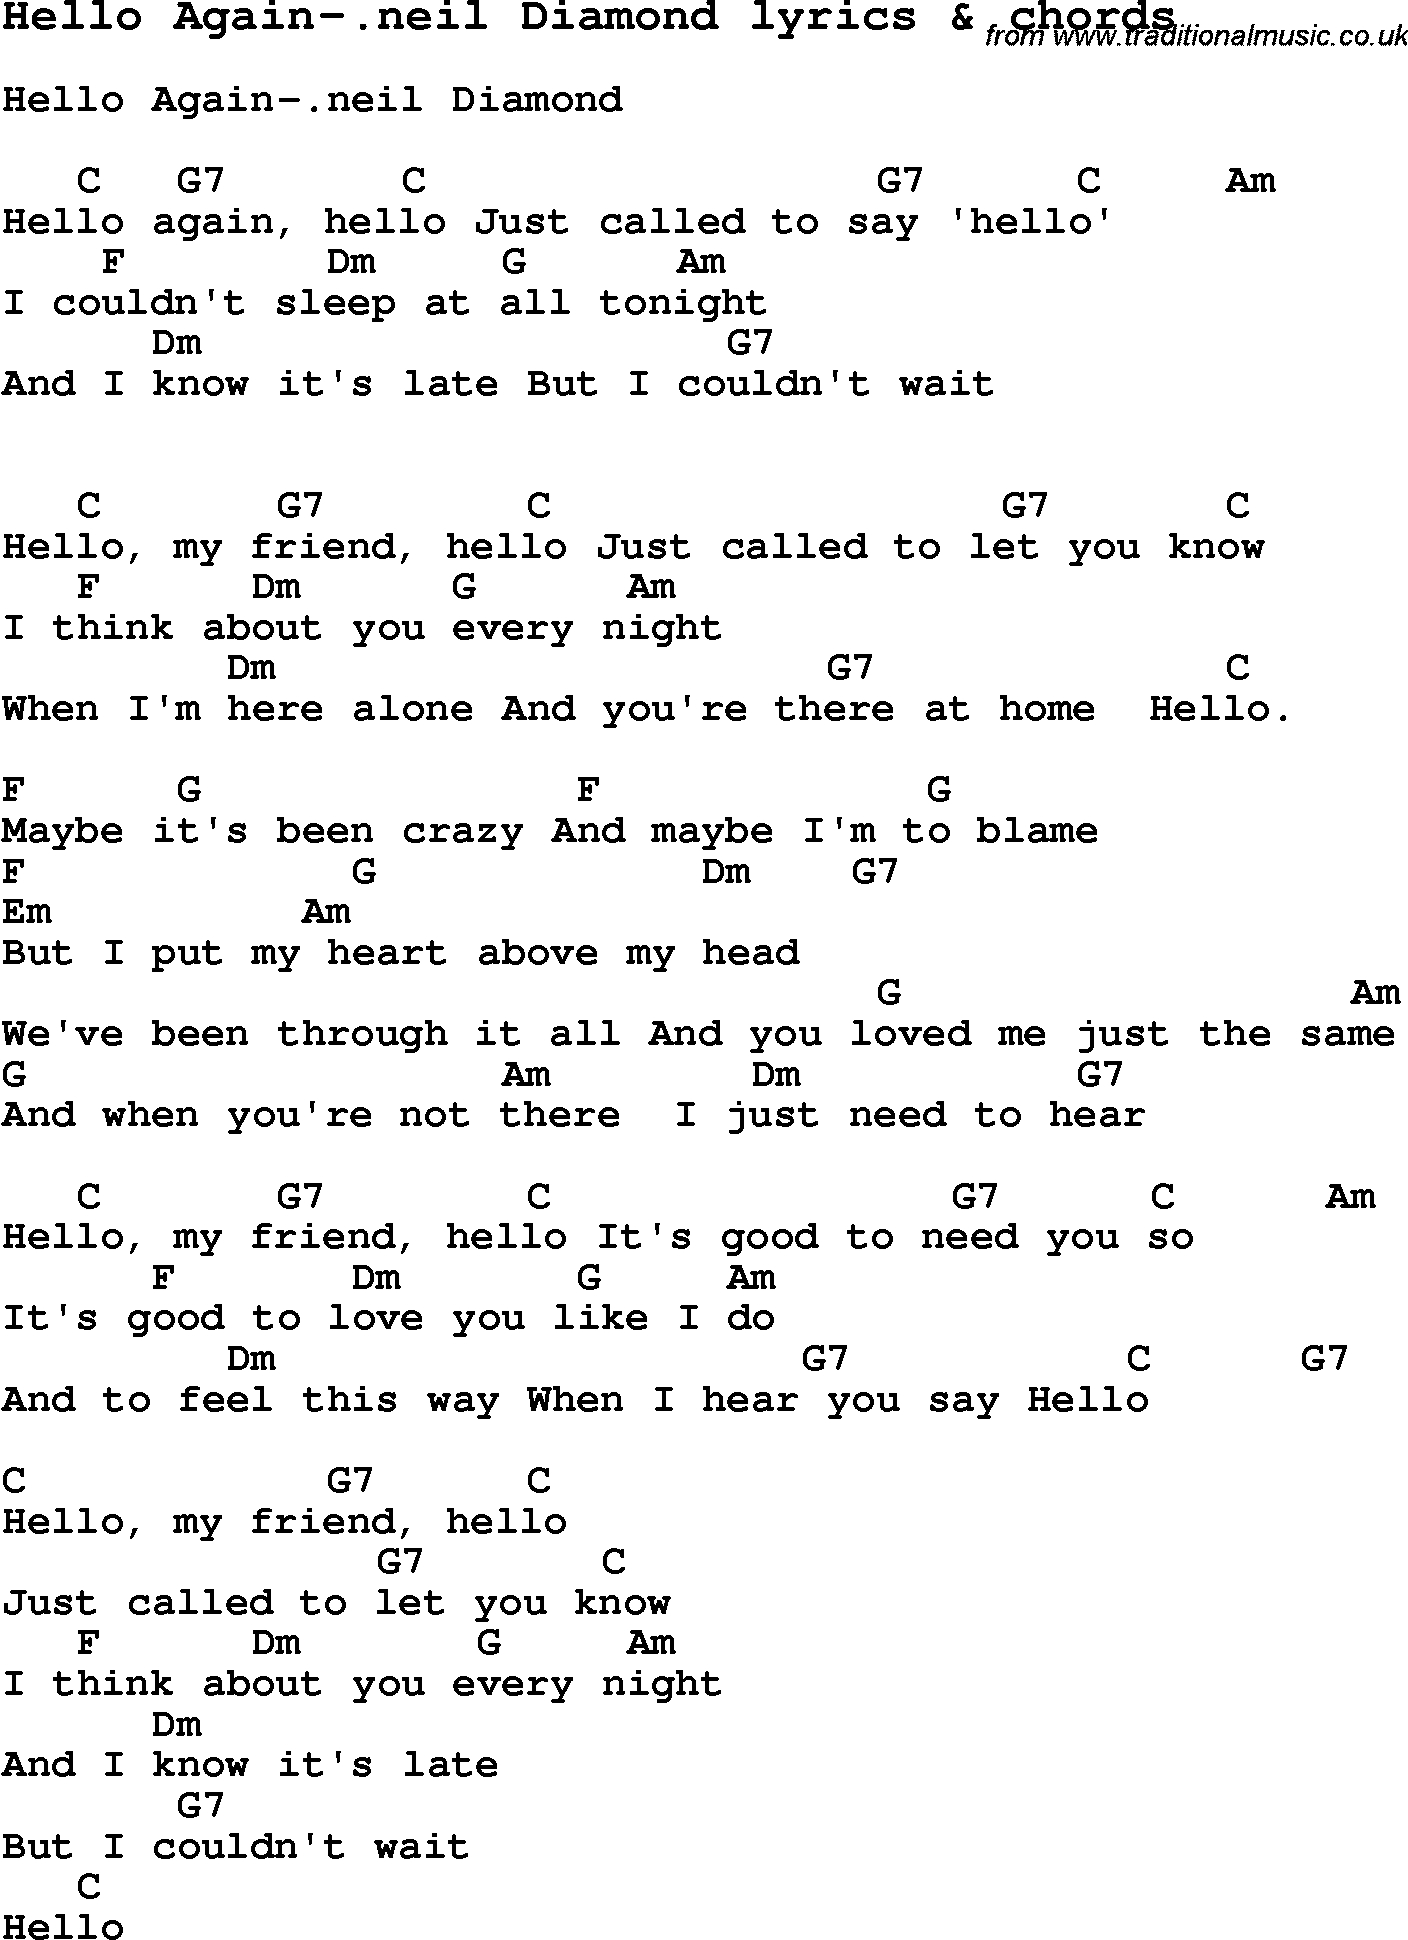 Hello Piano Chords Love Song Lyrics Forhello Again Neil Diamond With Chords